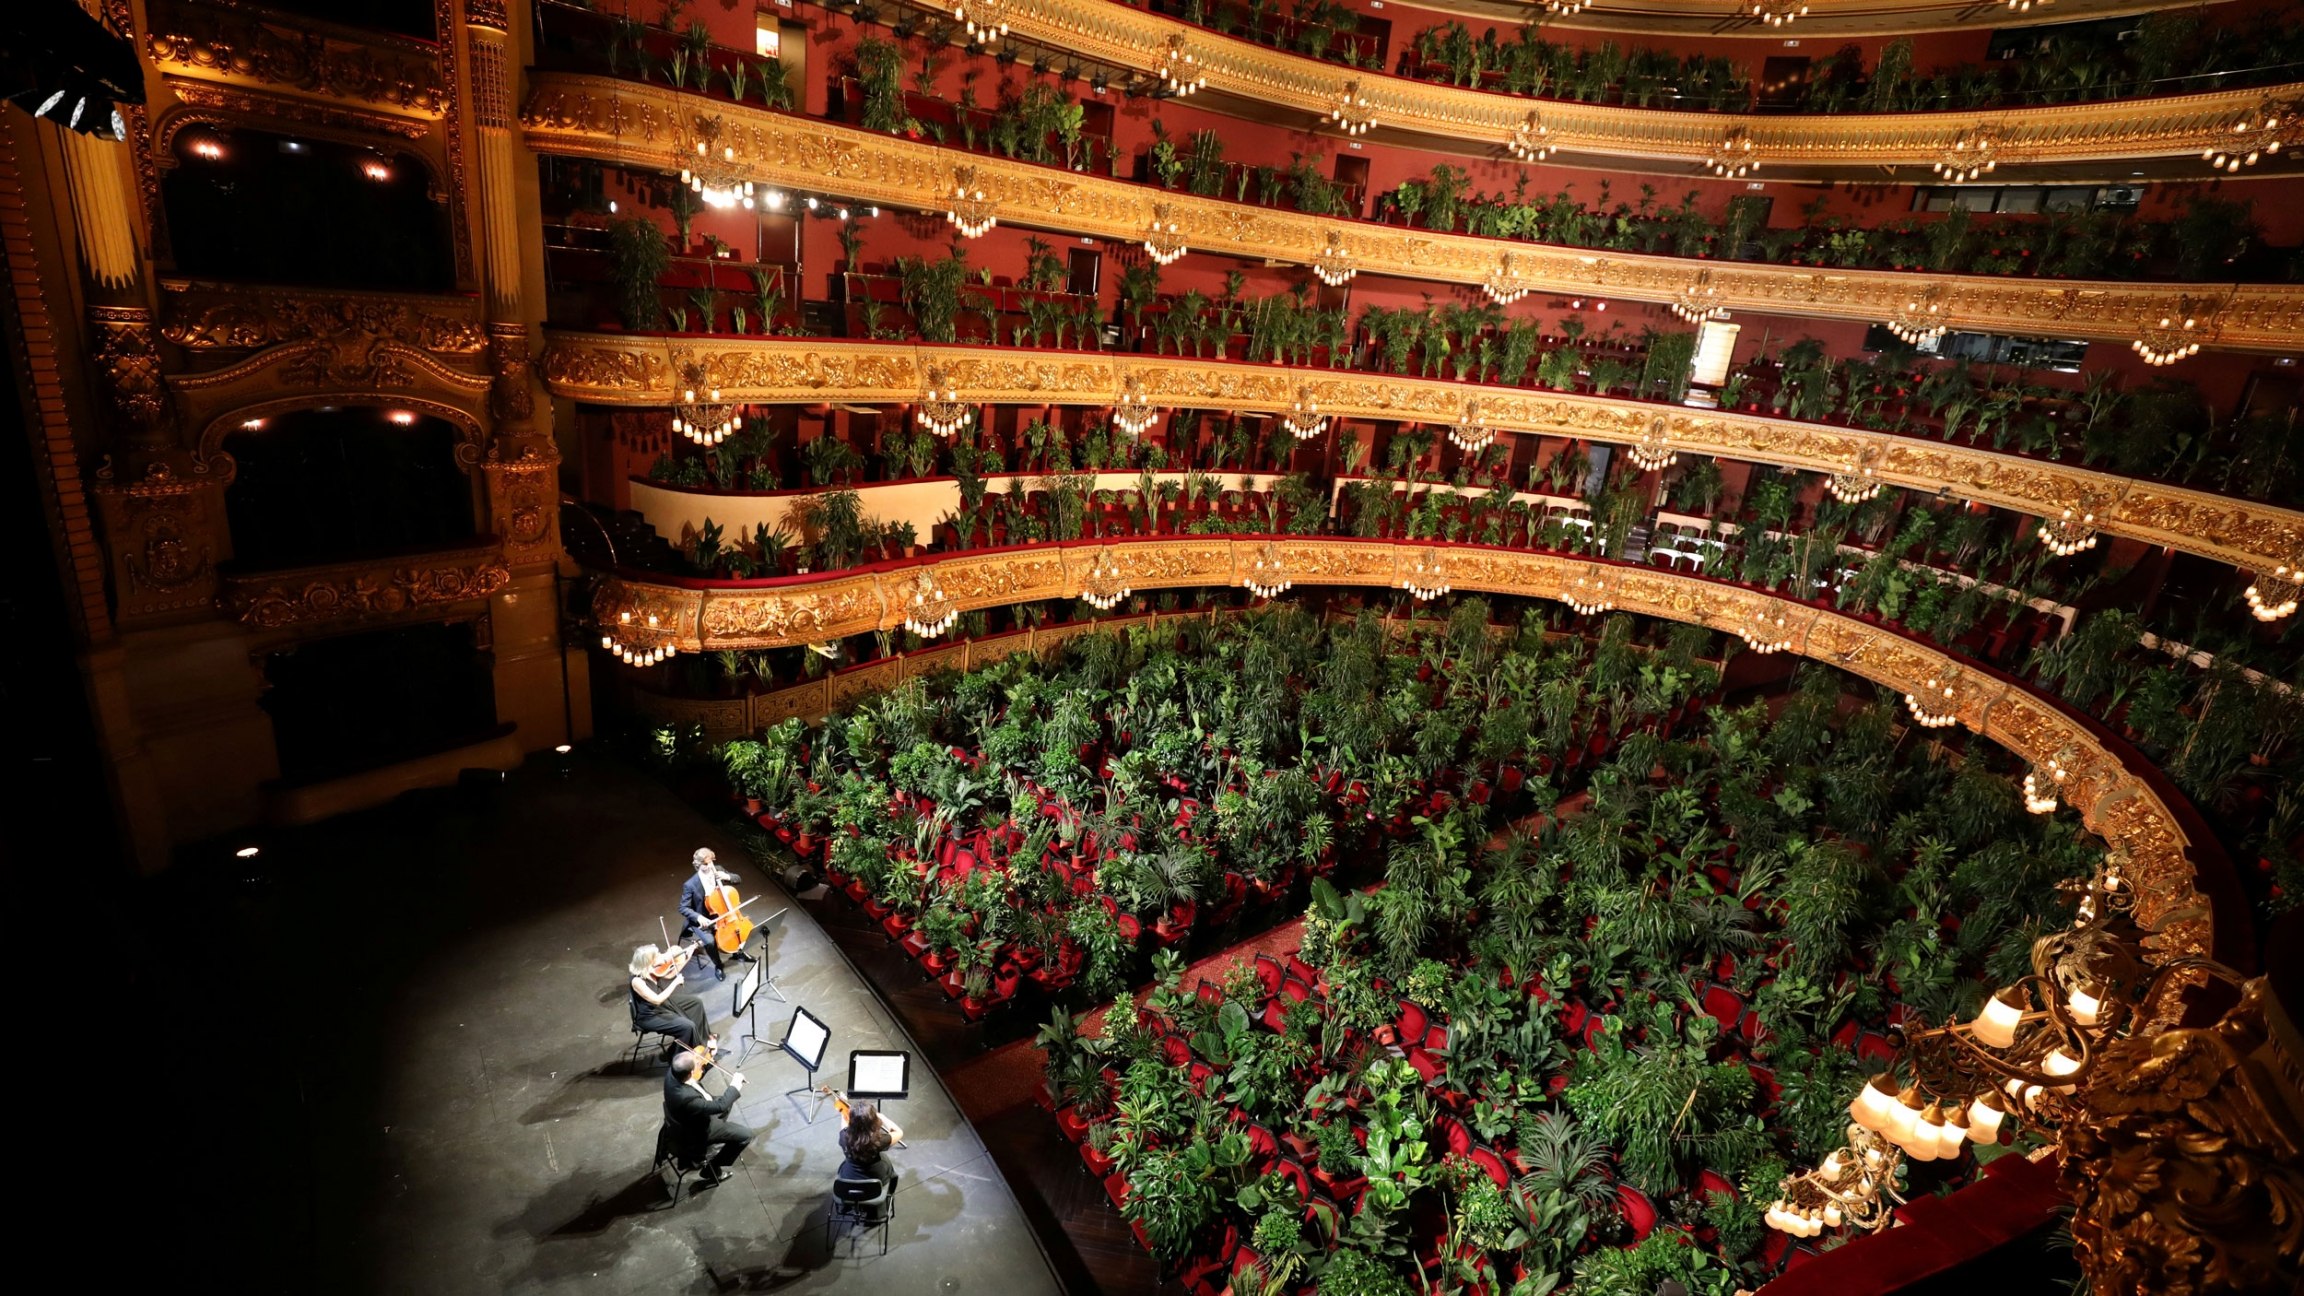 A theater is shown filled with potted plants in the chairs.